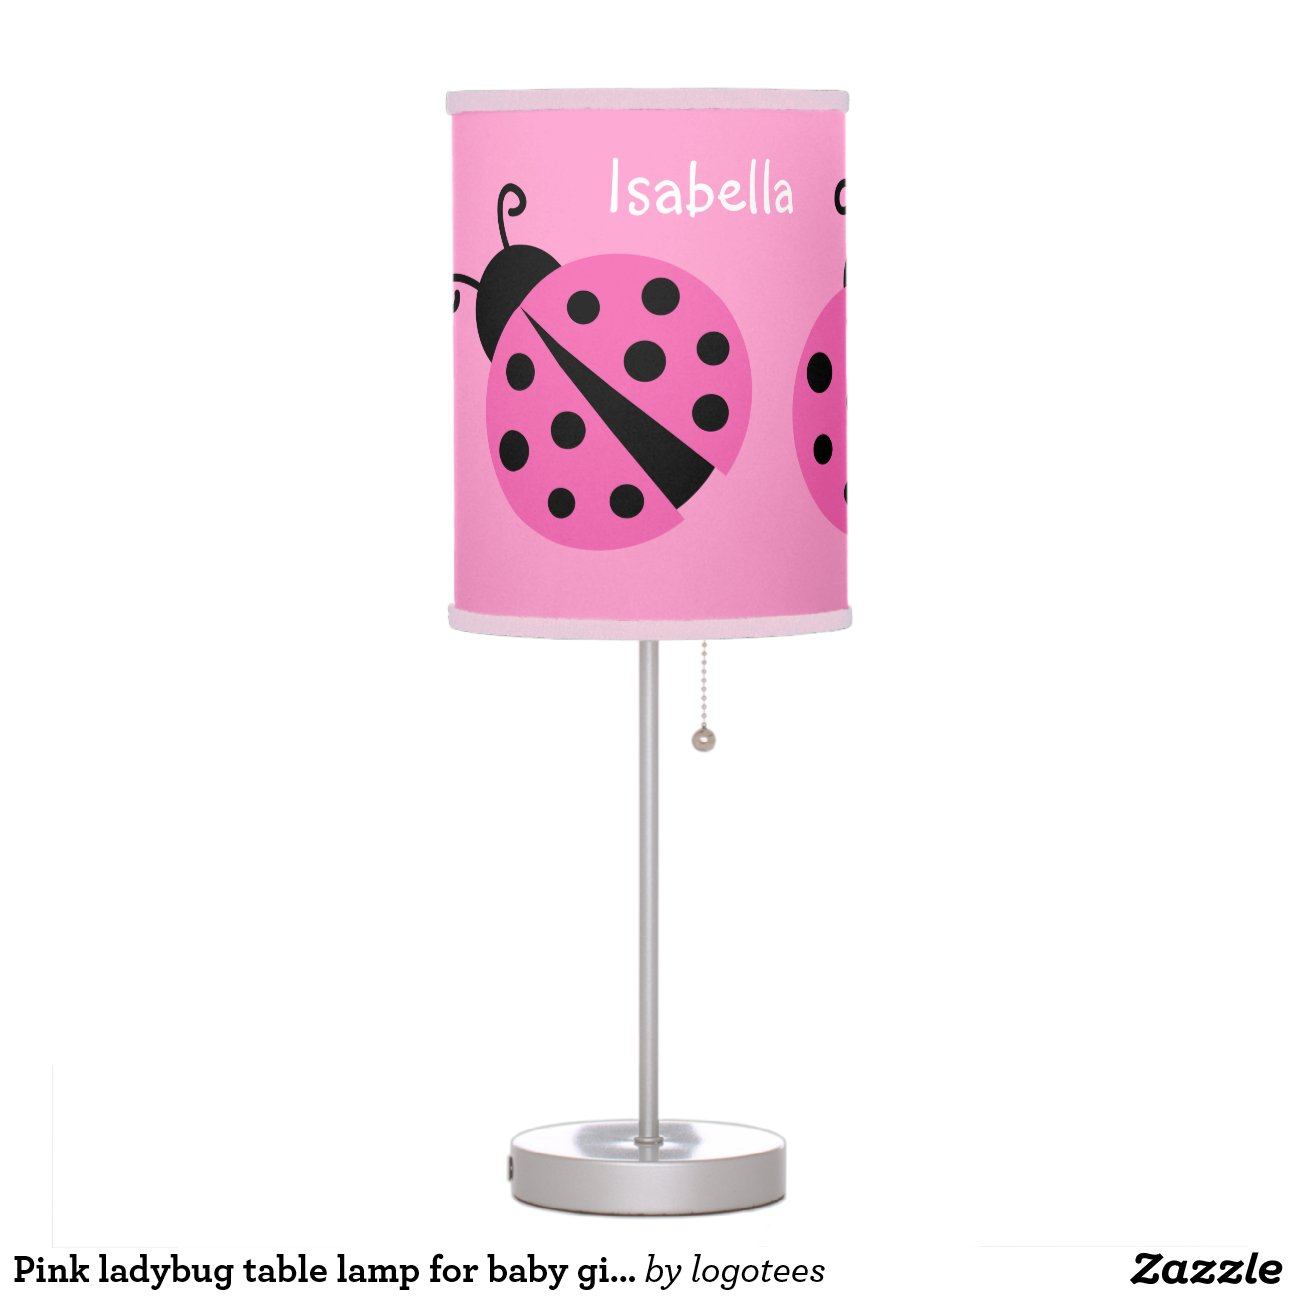 Baby Table Lamps Pink Ladybug Table Lamp For Baby Girl Nursery Room